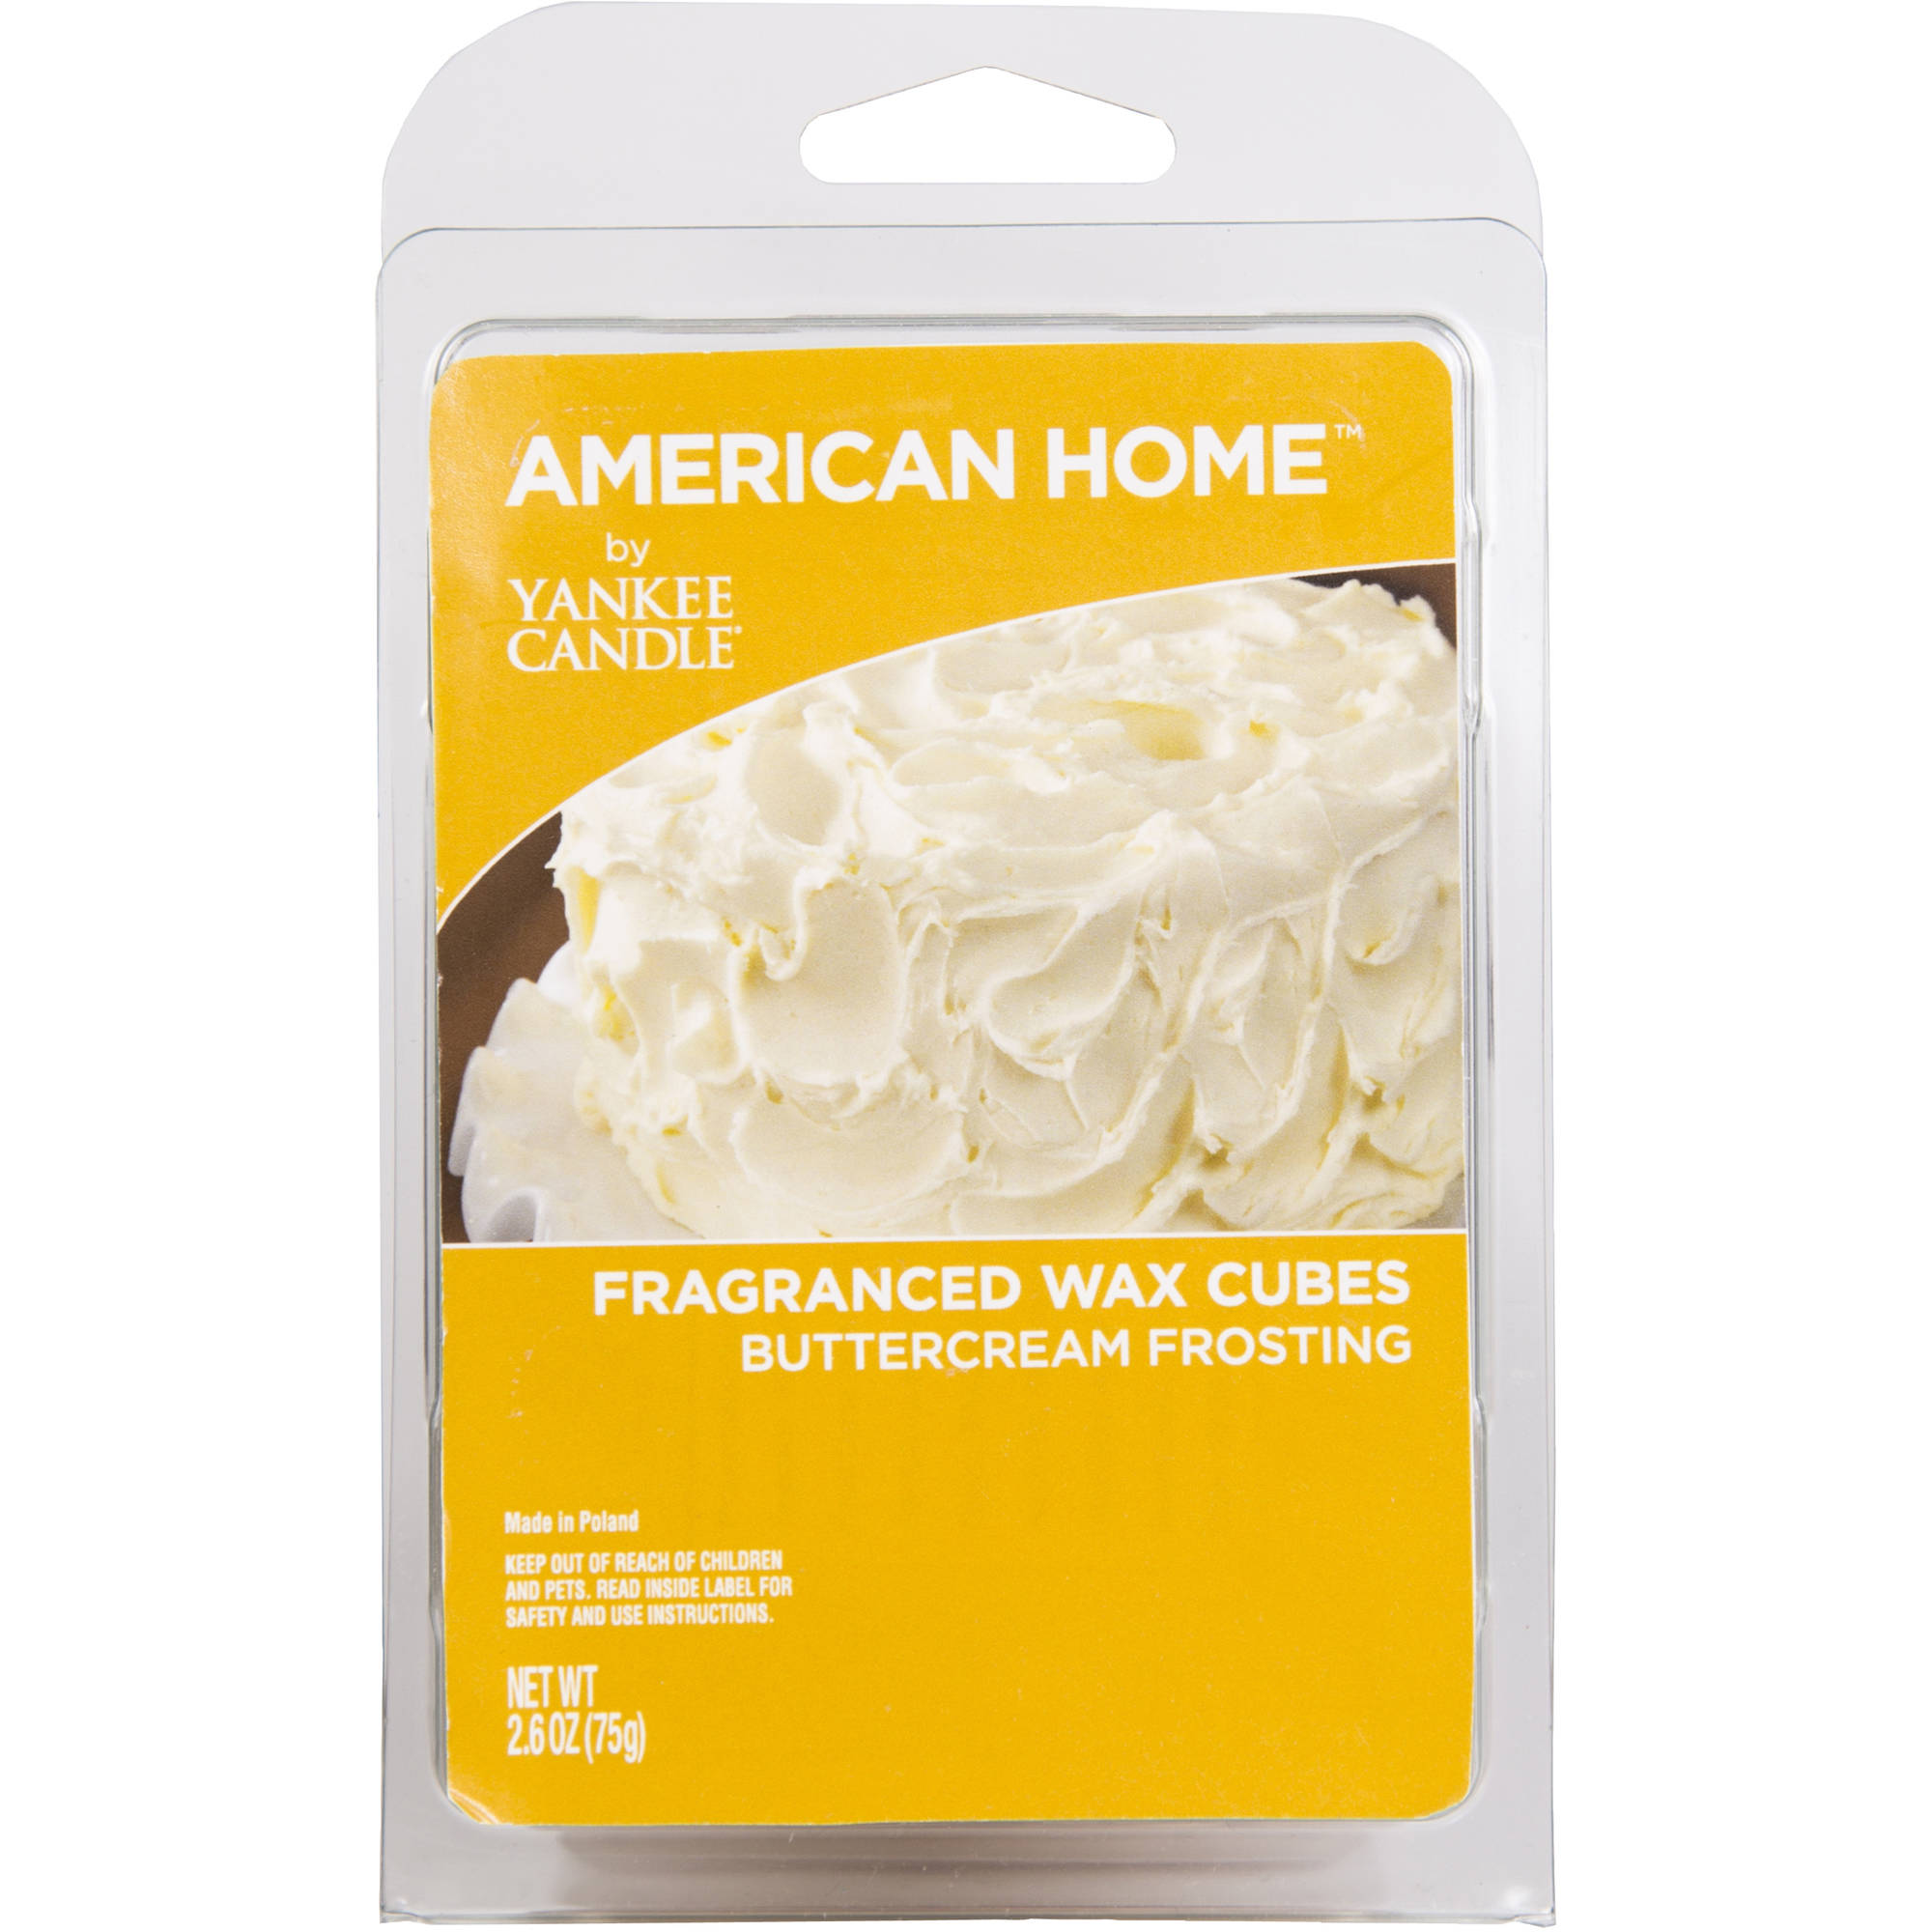 American Home by Yankee Candle Buttercream Frosting, 2.6 oz Fragranced Wax Cubes